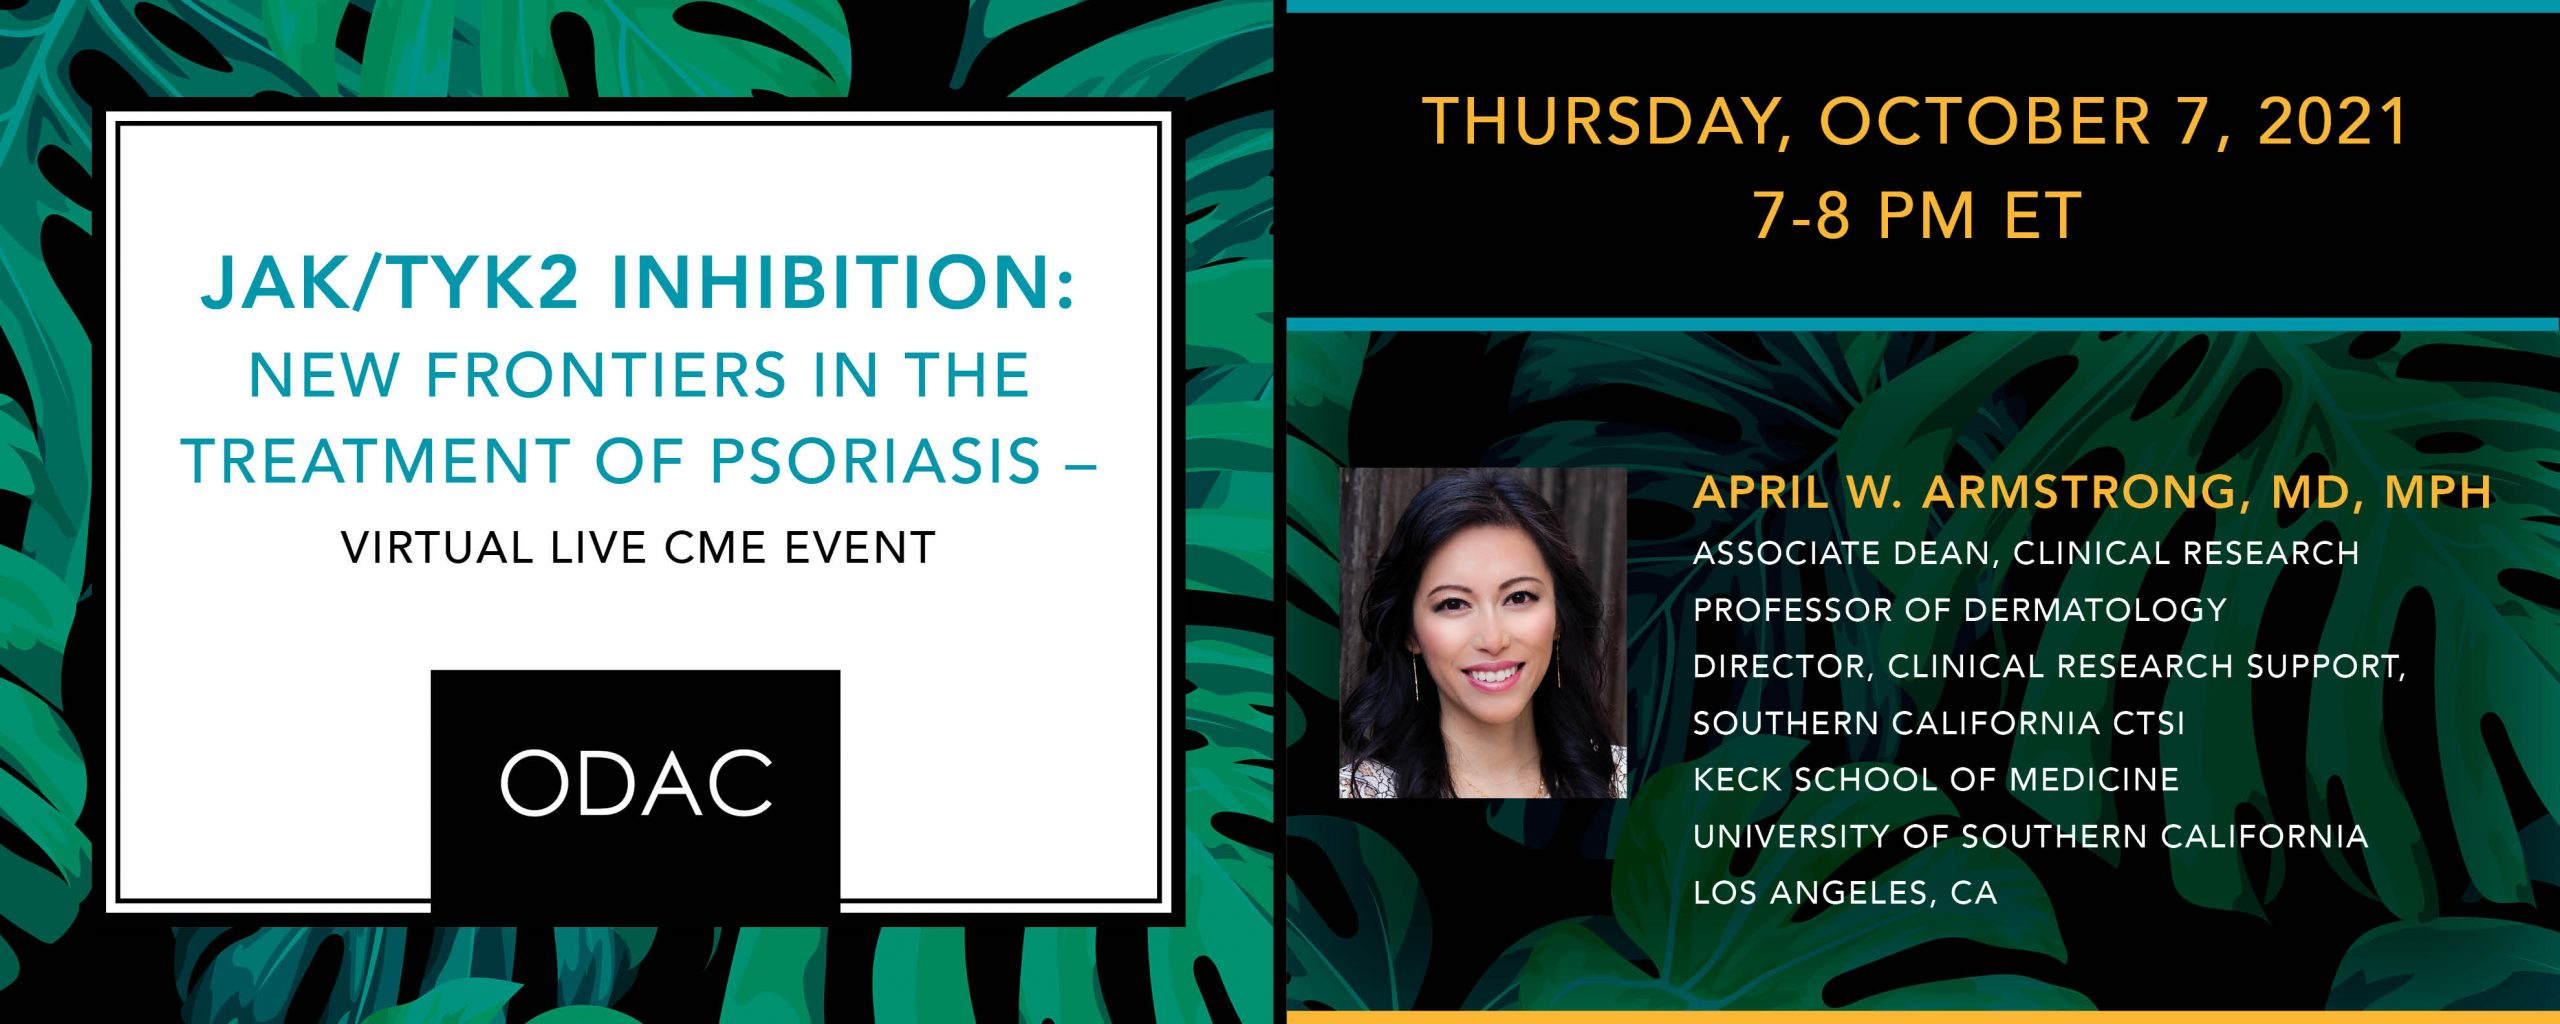 JAK/TYK2 Inhibition: New Frontiers in the Treatment of Psoriasis – Virtual Live CME Event